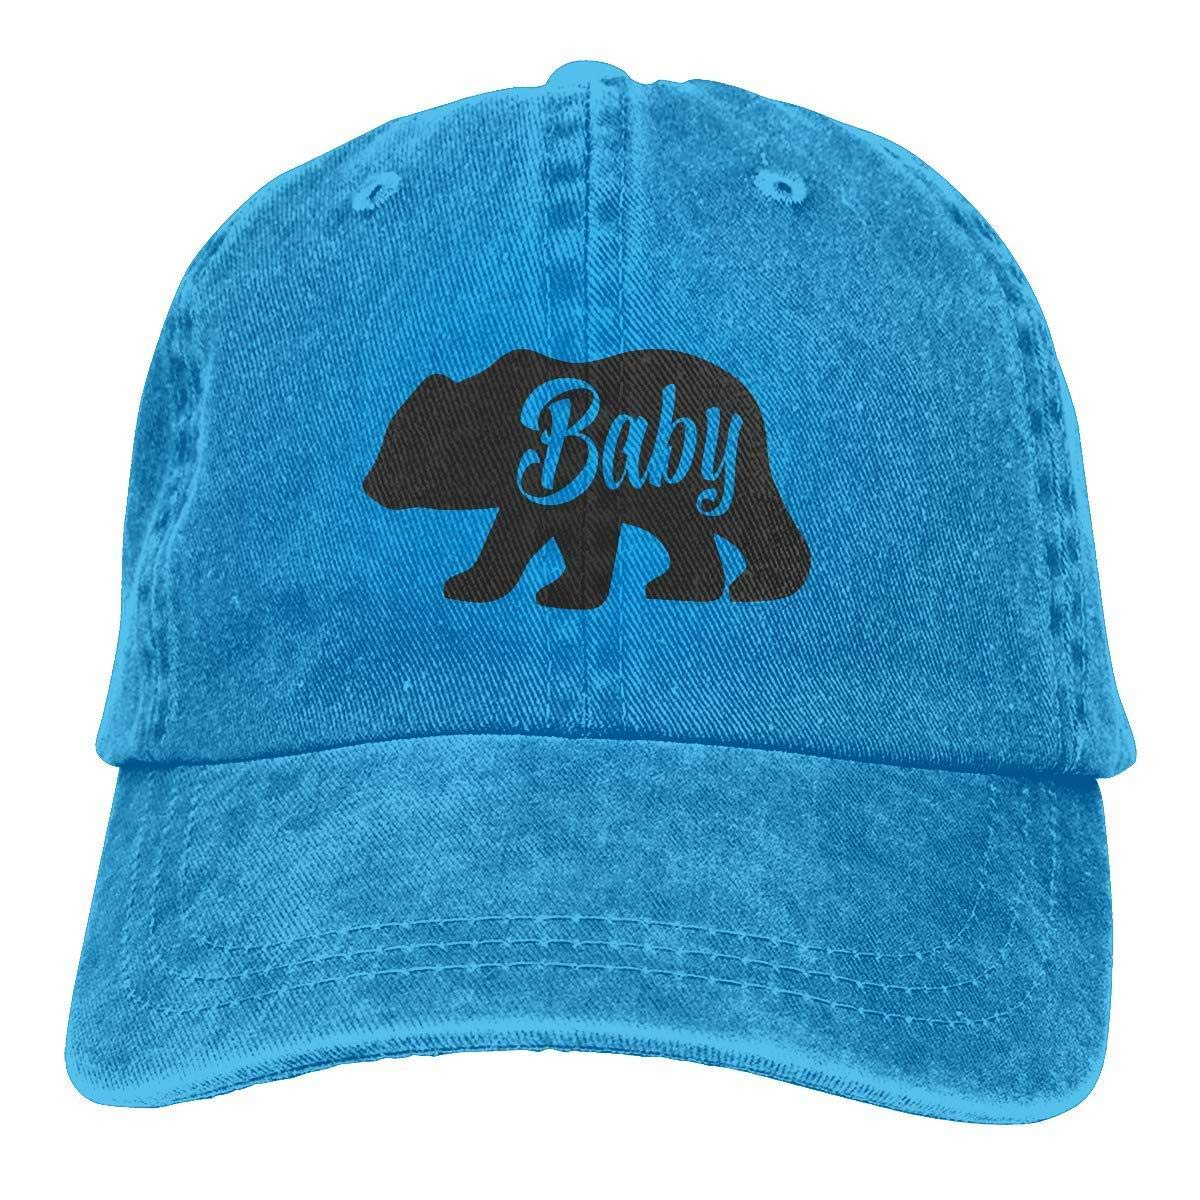 SELFD Baby Bear Cowboy Cotton Ball Hat Campaign Cap Comfortable and Breathable Natural